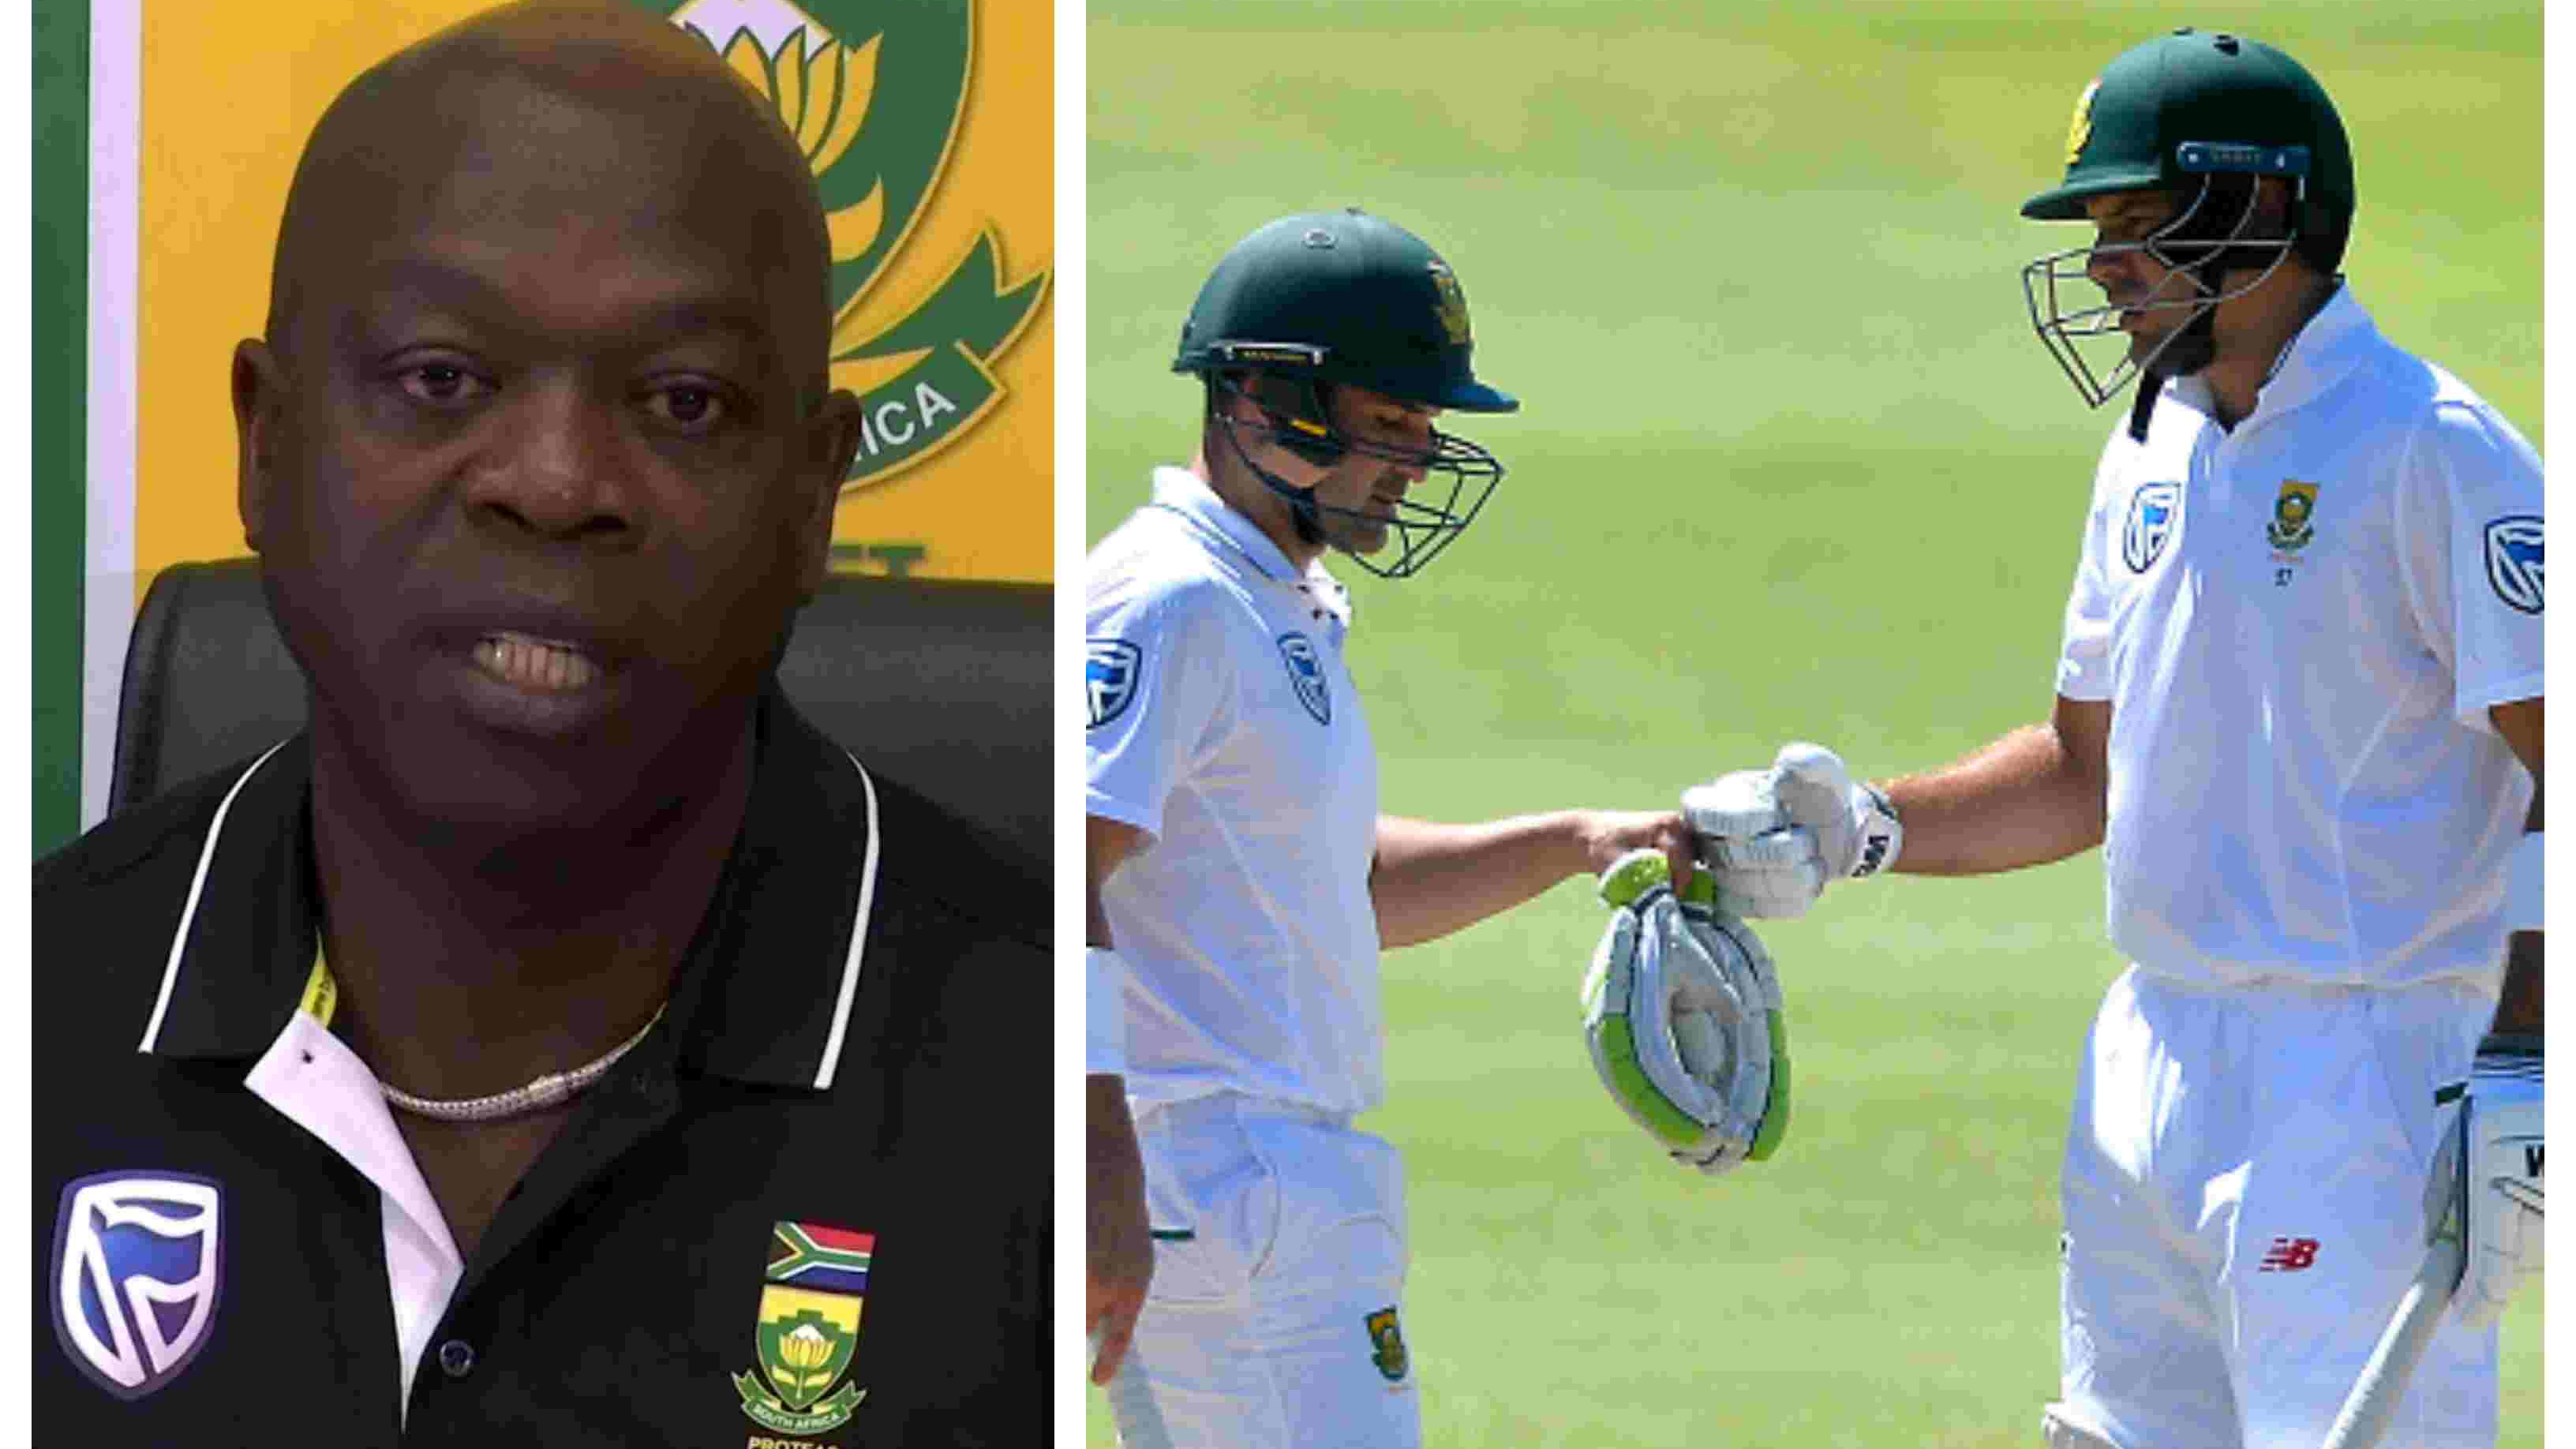 SA v PAK 2018-19: Ottis Gibson not concerned with Proteas batsmen's lacklustre showing in Sri Lanka